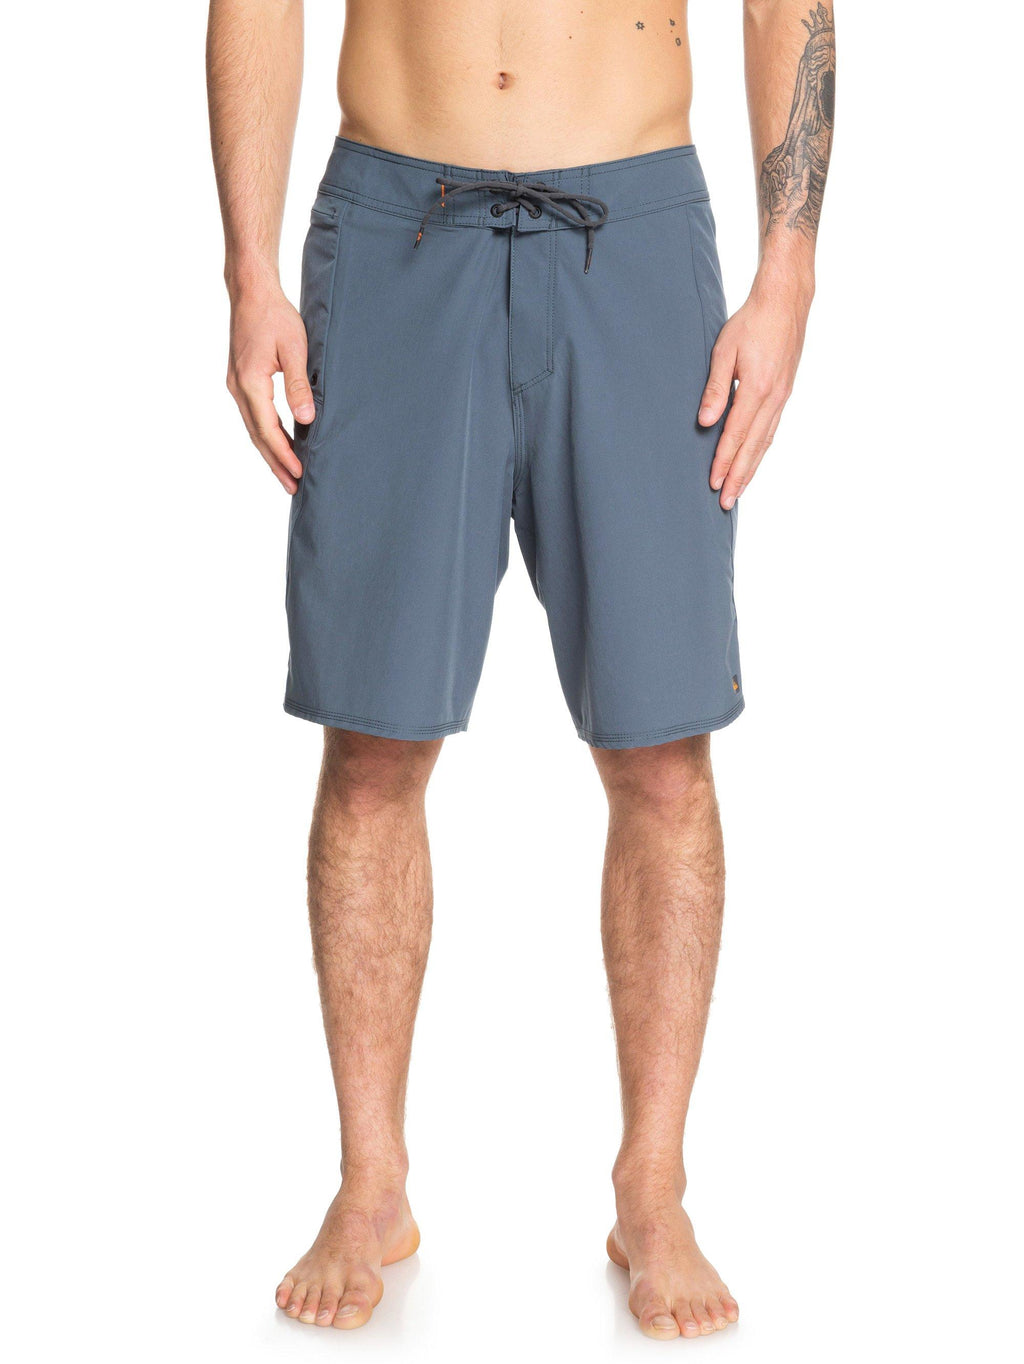 Quiksilver Paddler Boardshorts - Men's